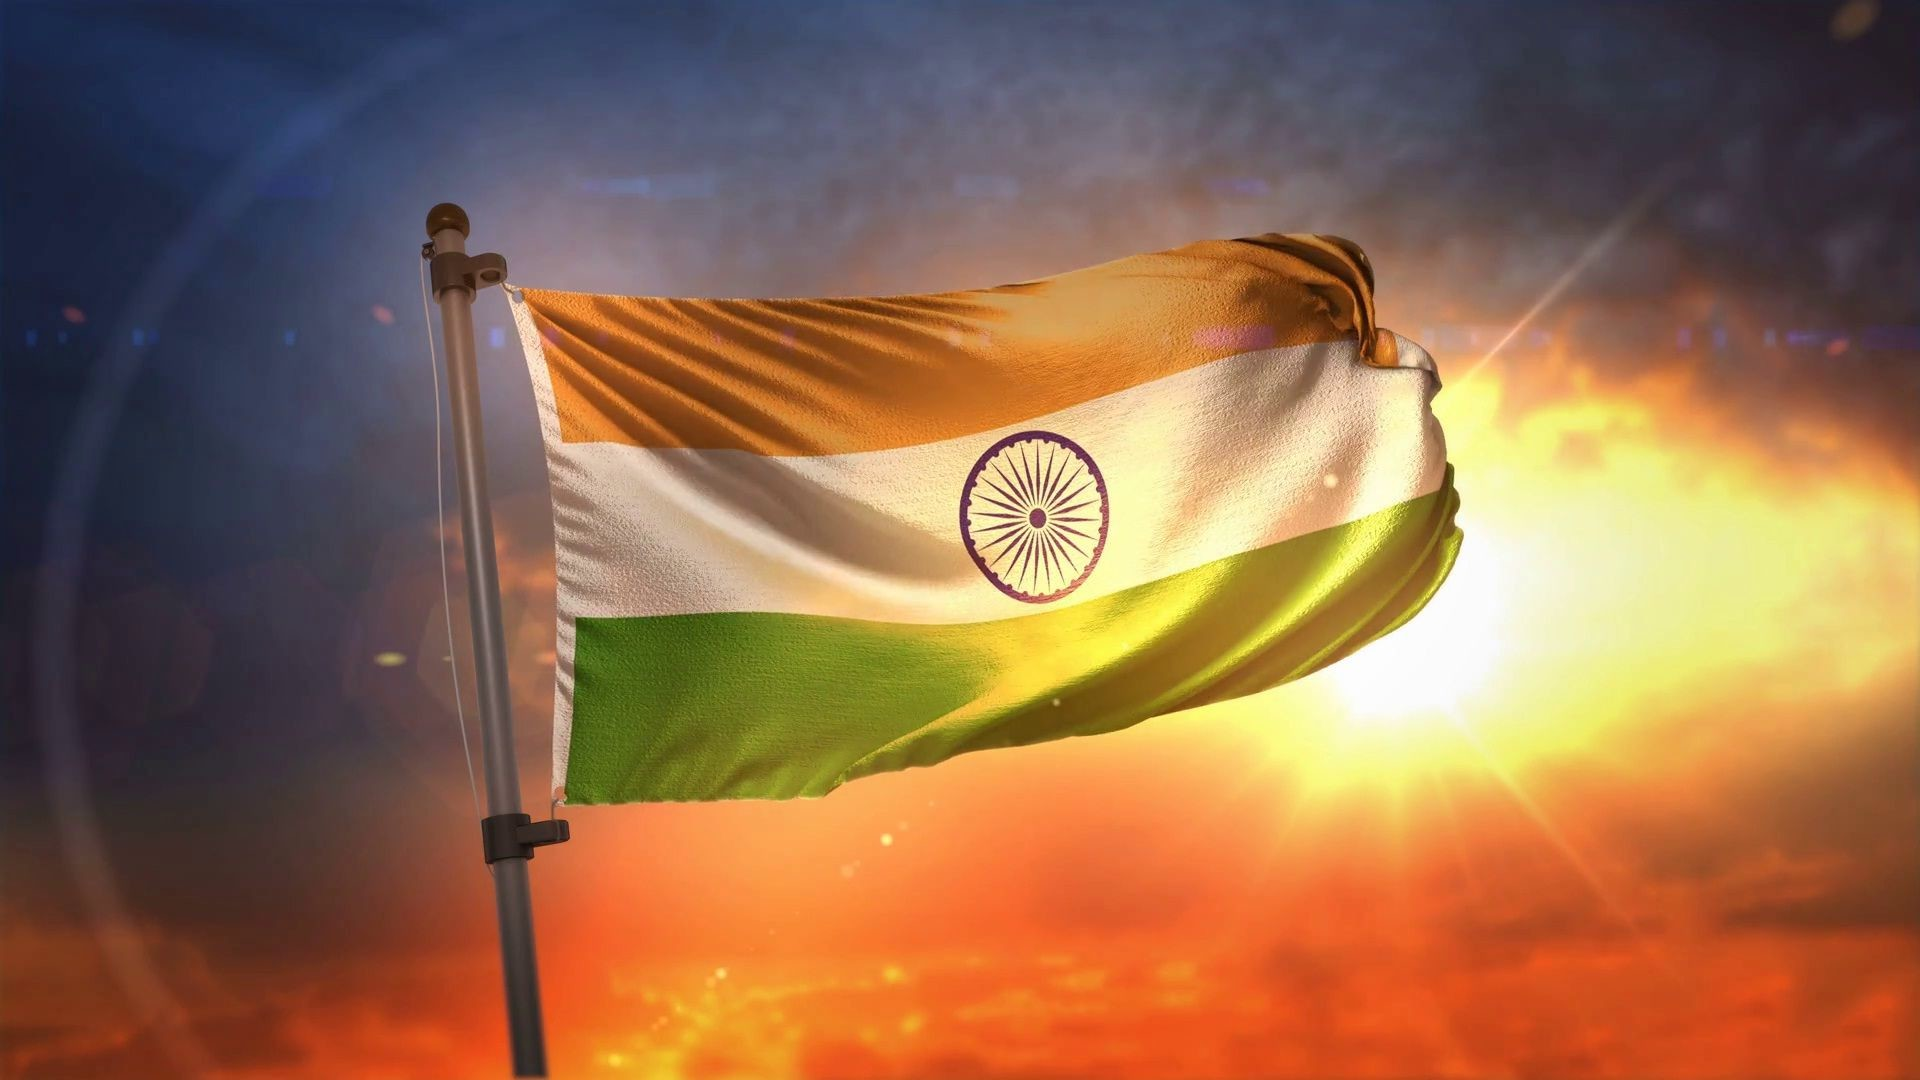 "1920x1080 1024x768 1024x768px Indian Flag HD Wallpaper - WallpaperSafari"">"